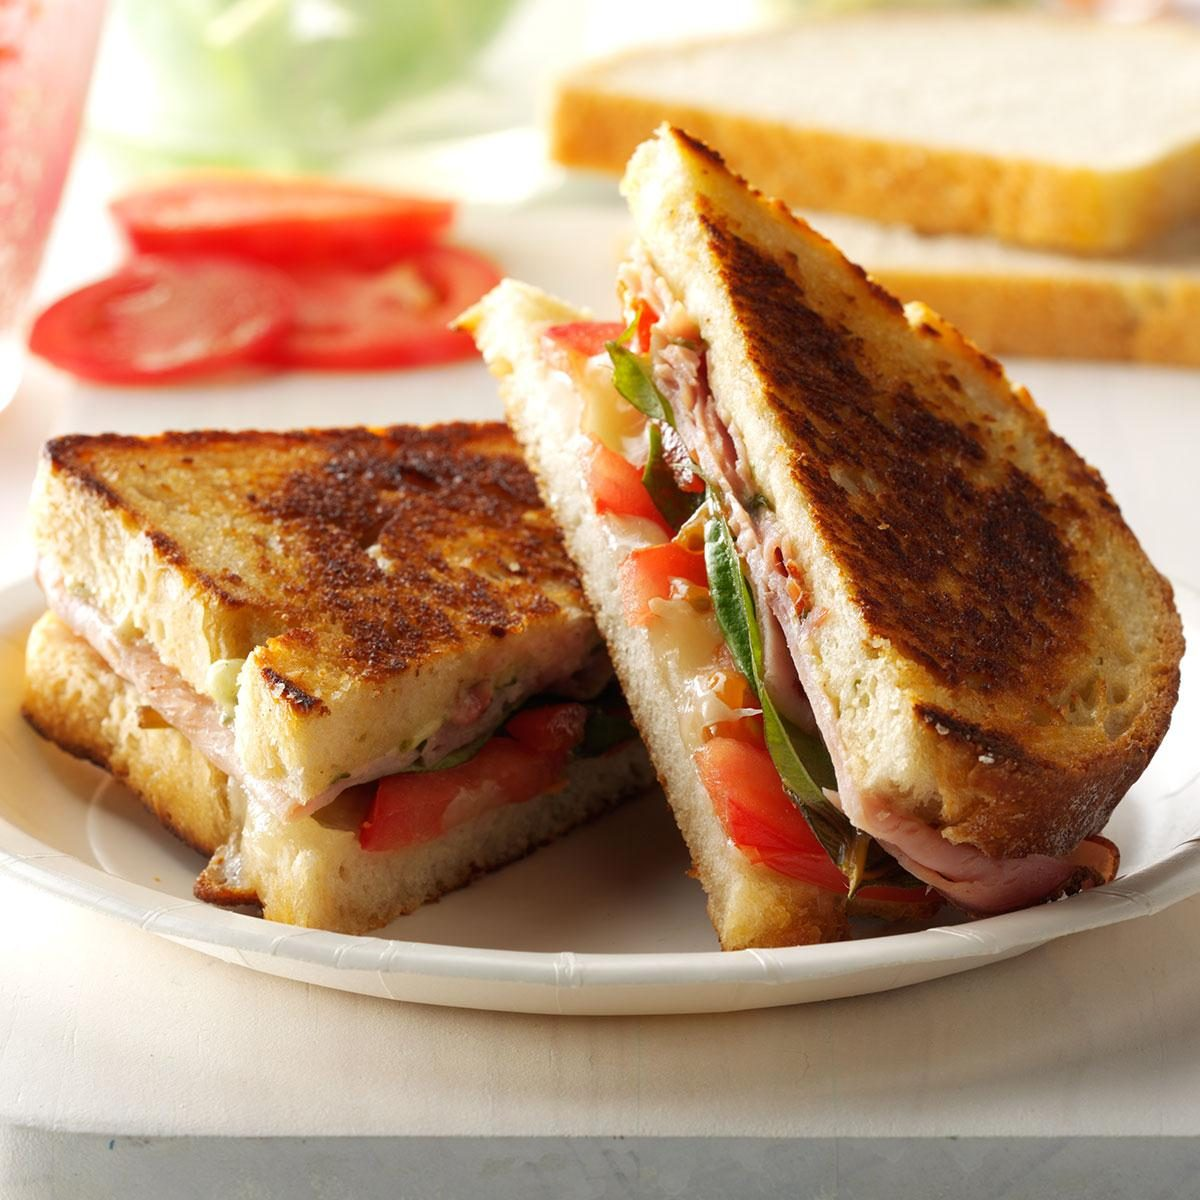 Thursday: Grilled Pesto, Ham and Provolone Sandwiches